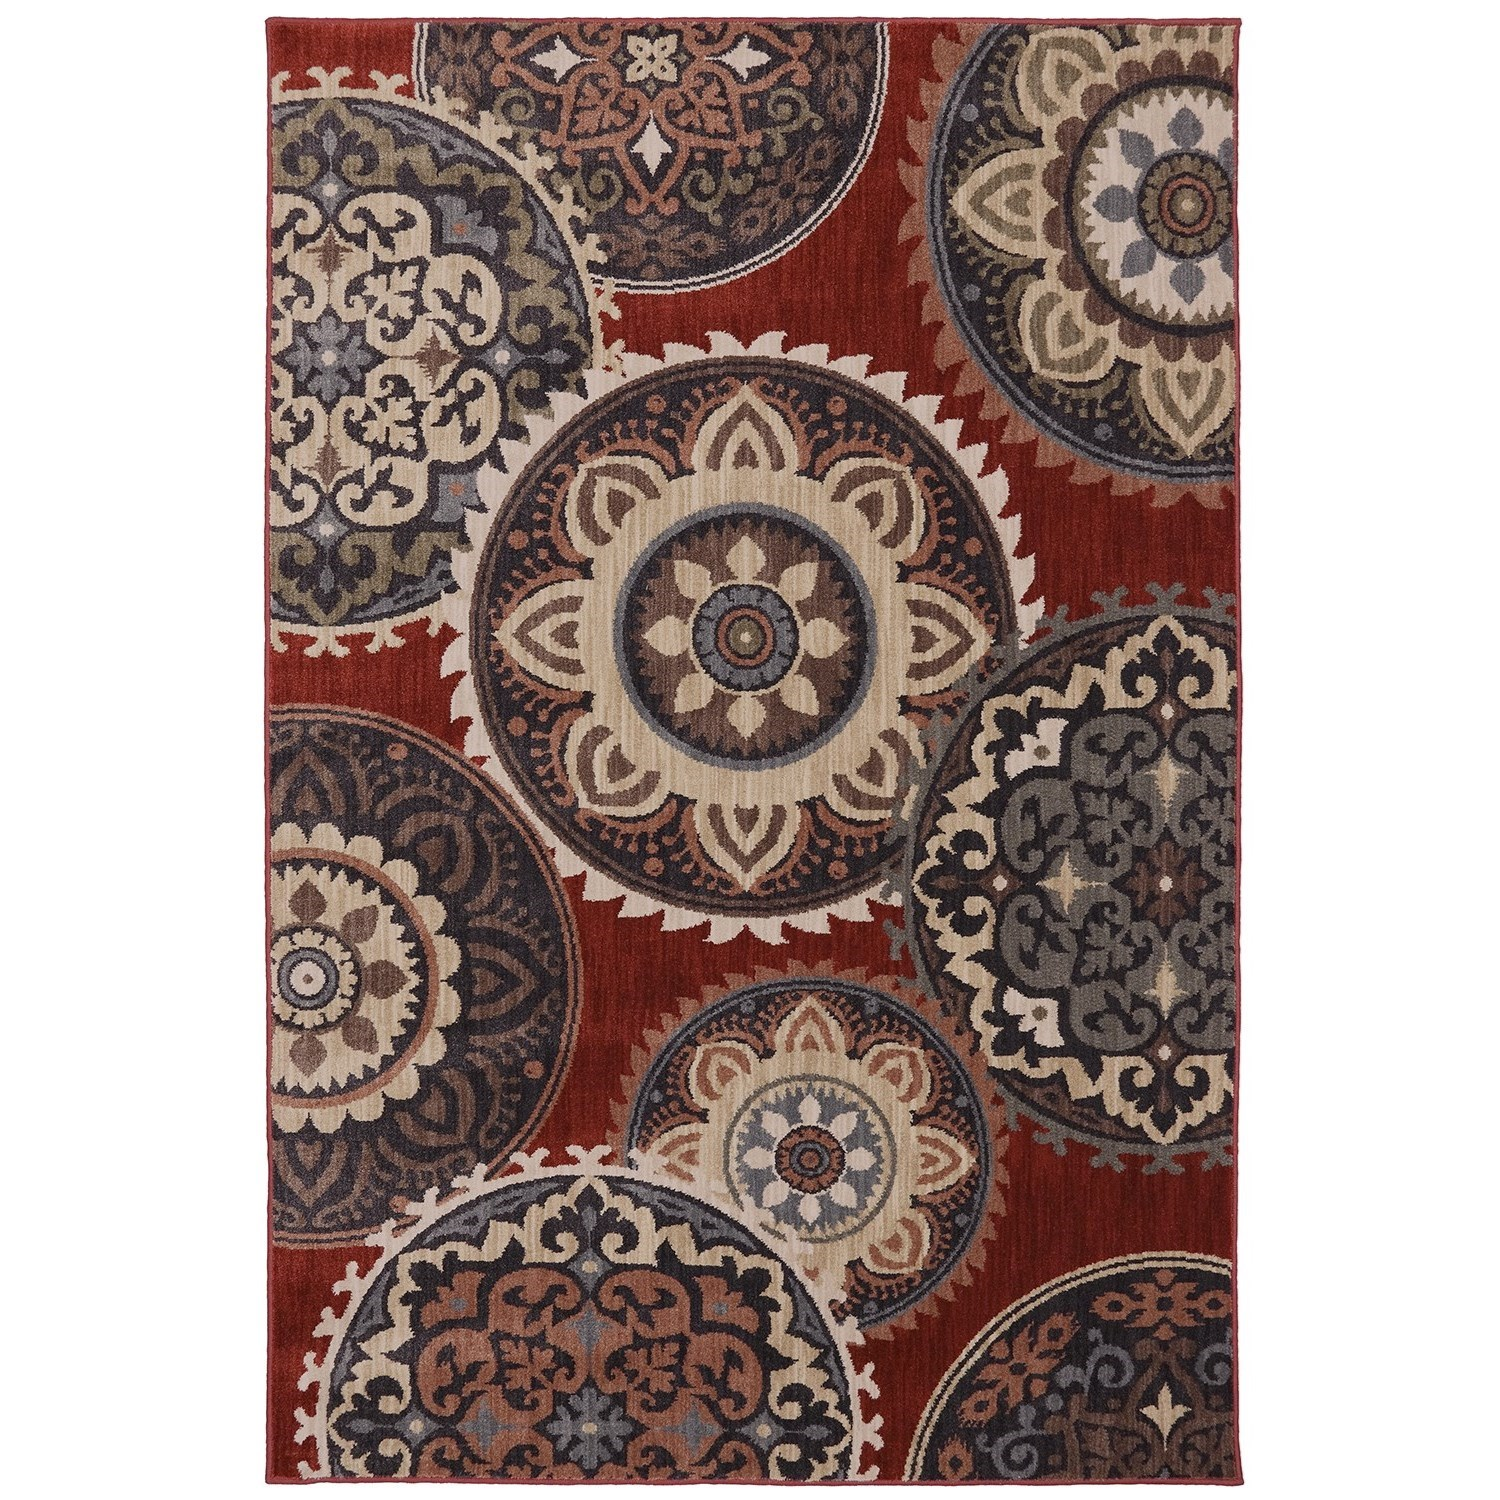 Dryden 8'x11' Summit View Ashen Area Rug by American Rug Craftsmen at Alison Craig Home Furnishings